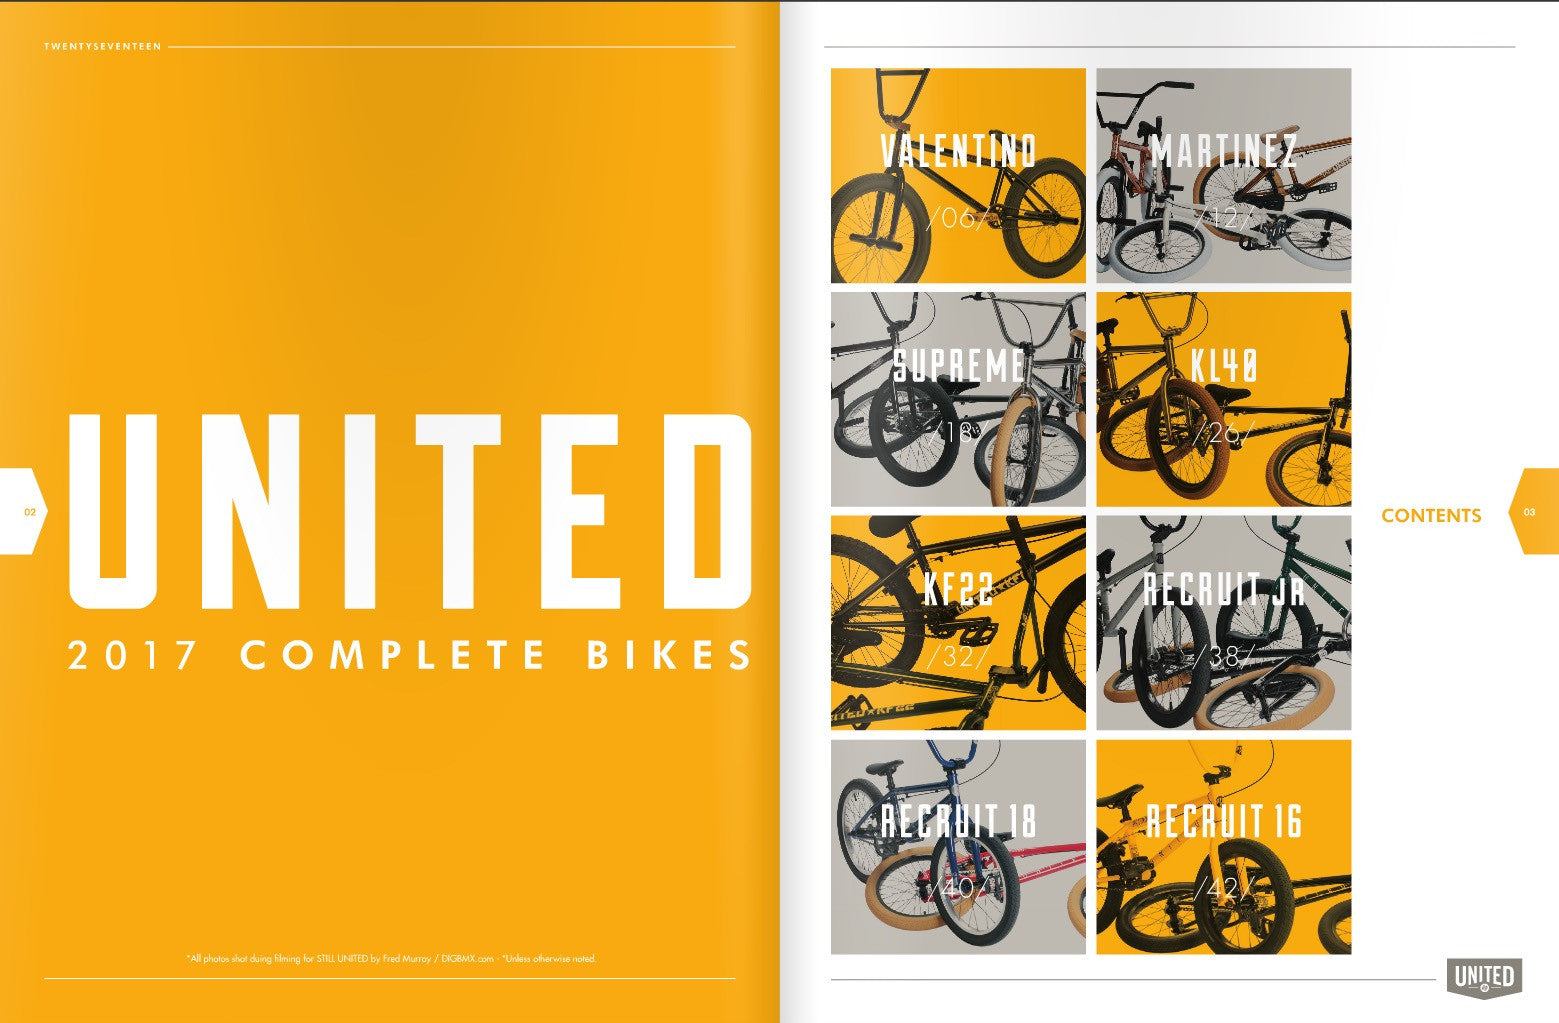 United 2017 Complete Bikes OUT NOW!